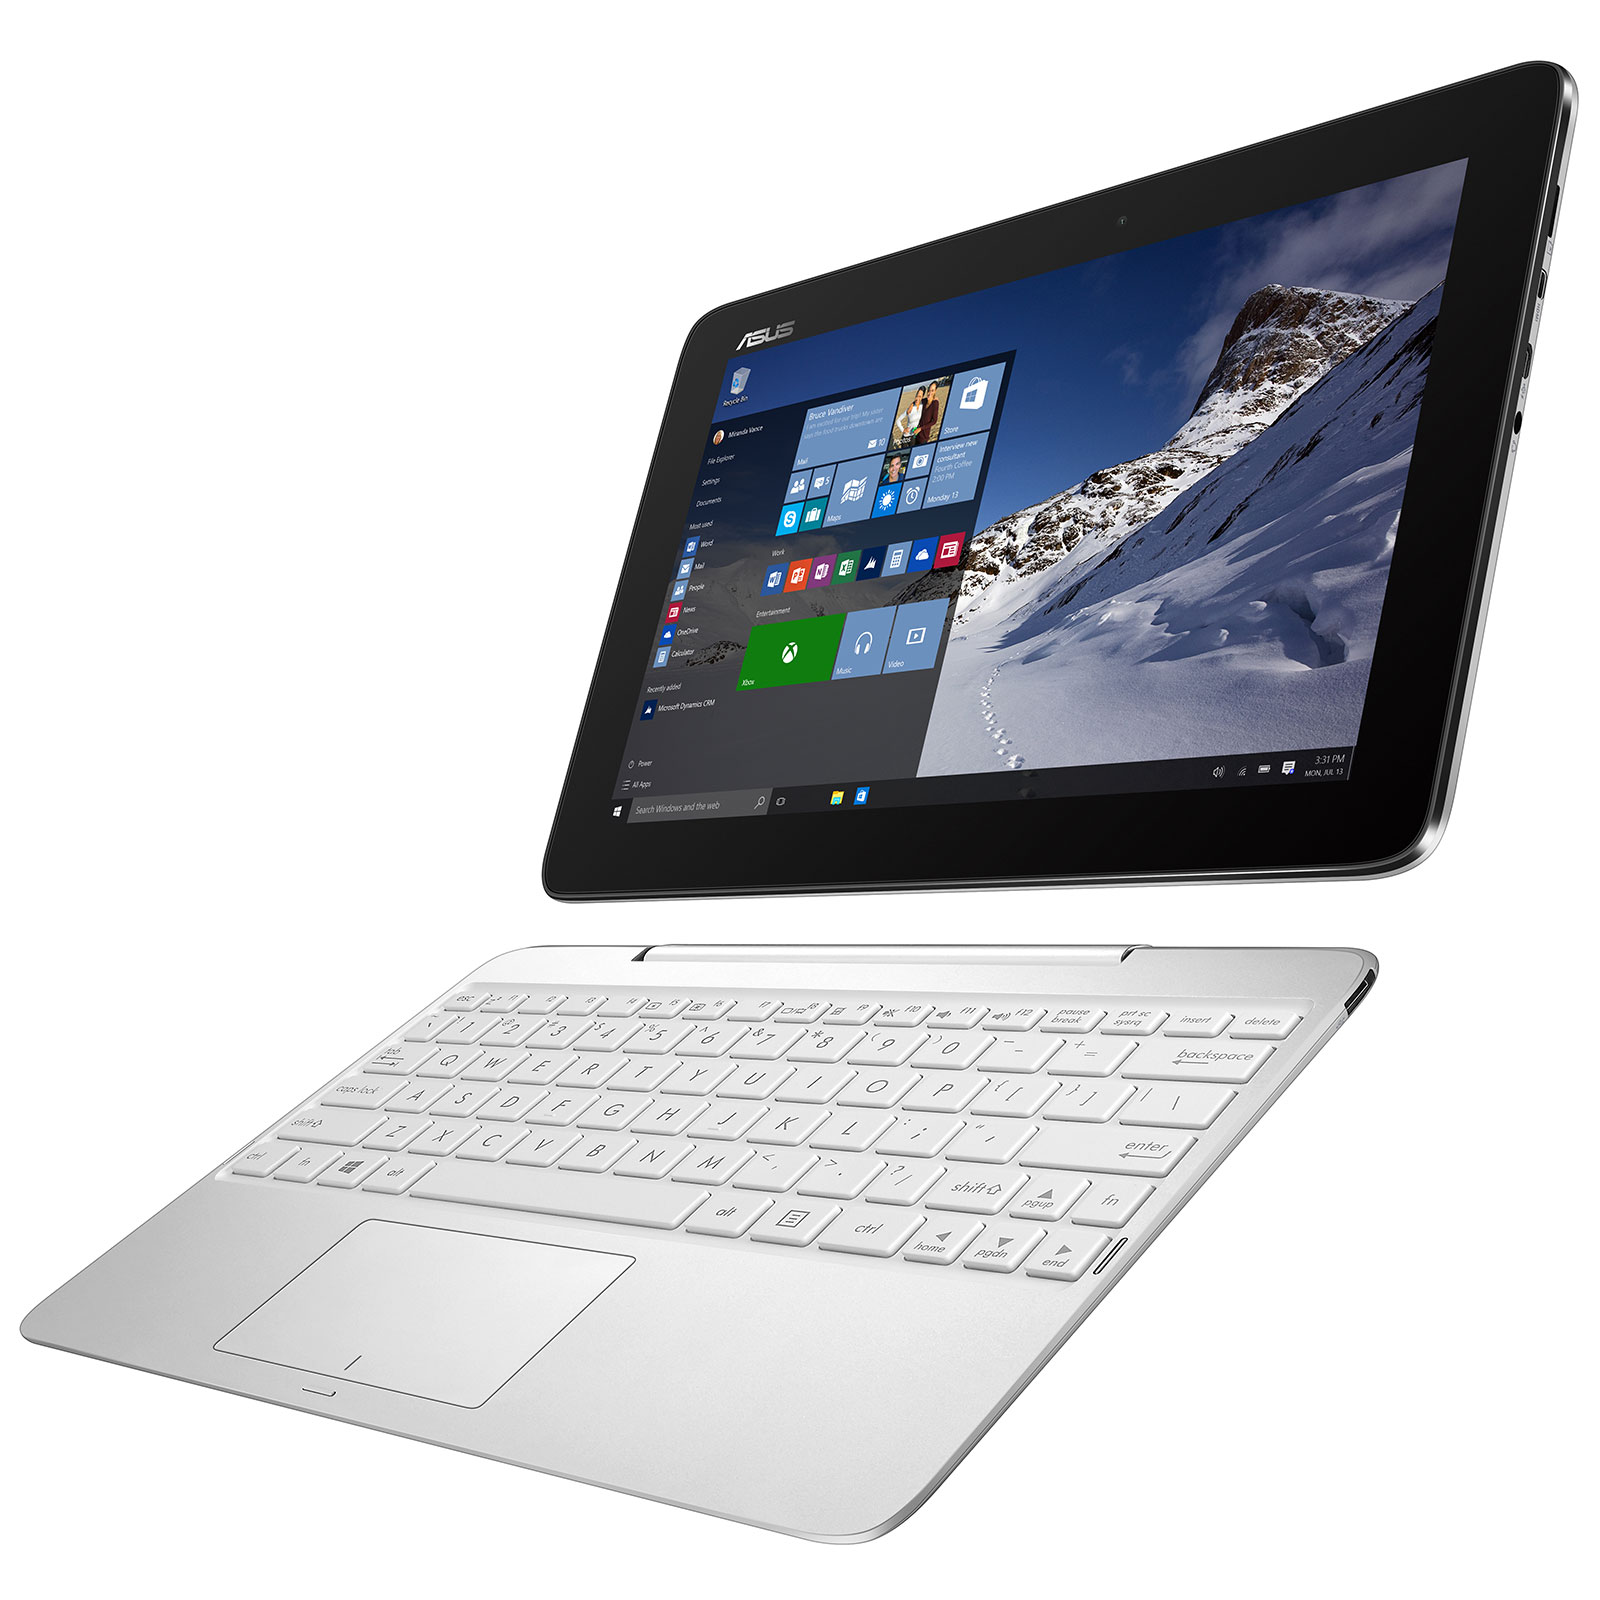 asus transformer book t100ha fu007t blanc pc portable asus sur. Black Bedroom Furniture Sets. Home Design Ideas